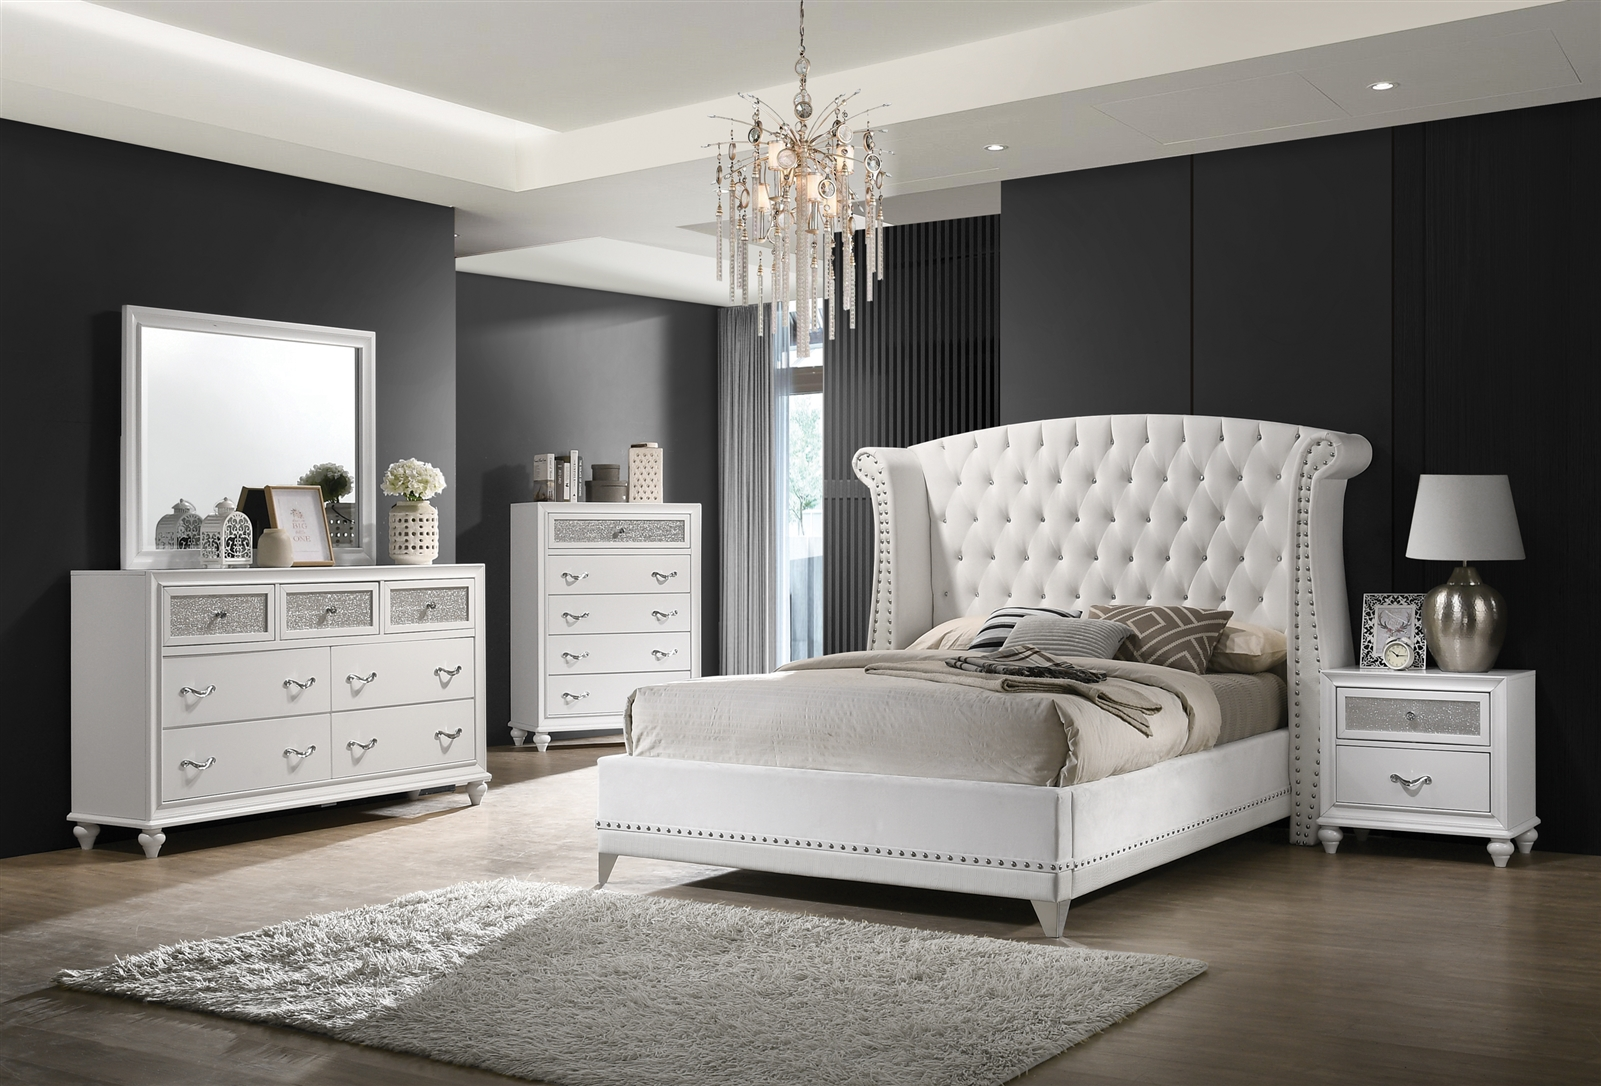 Modern White Finish Tufted Bedroom Collection With Silver Accent Trim